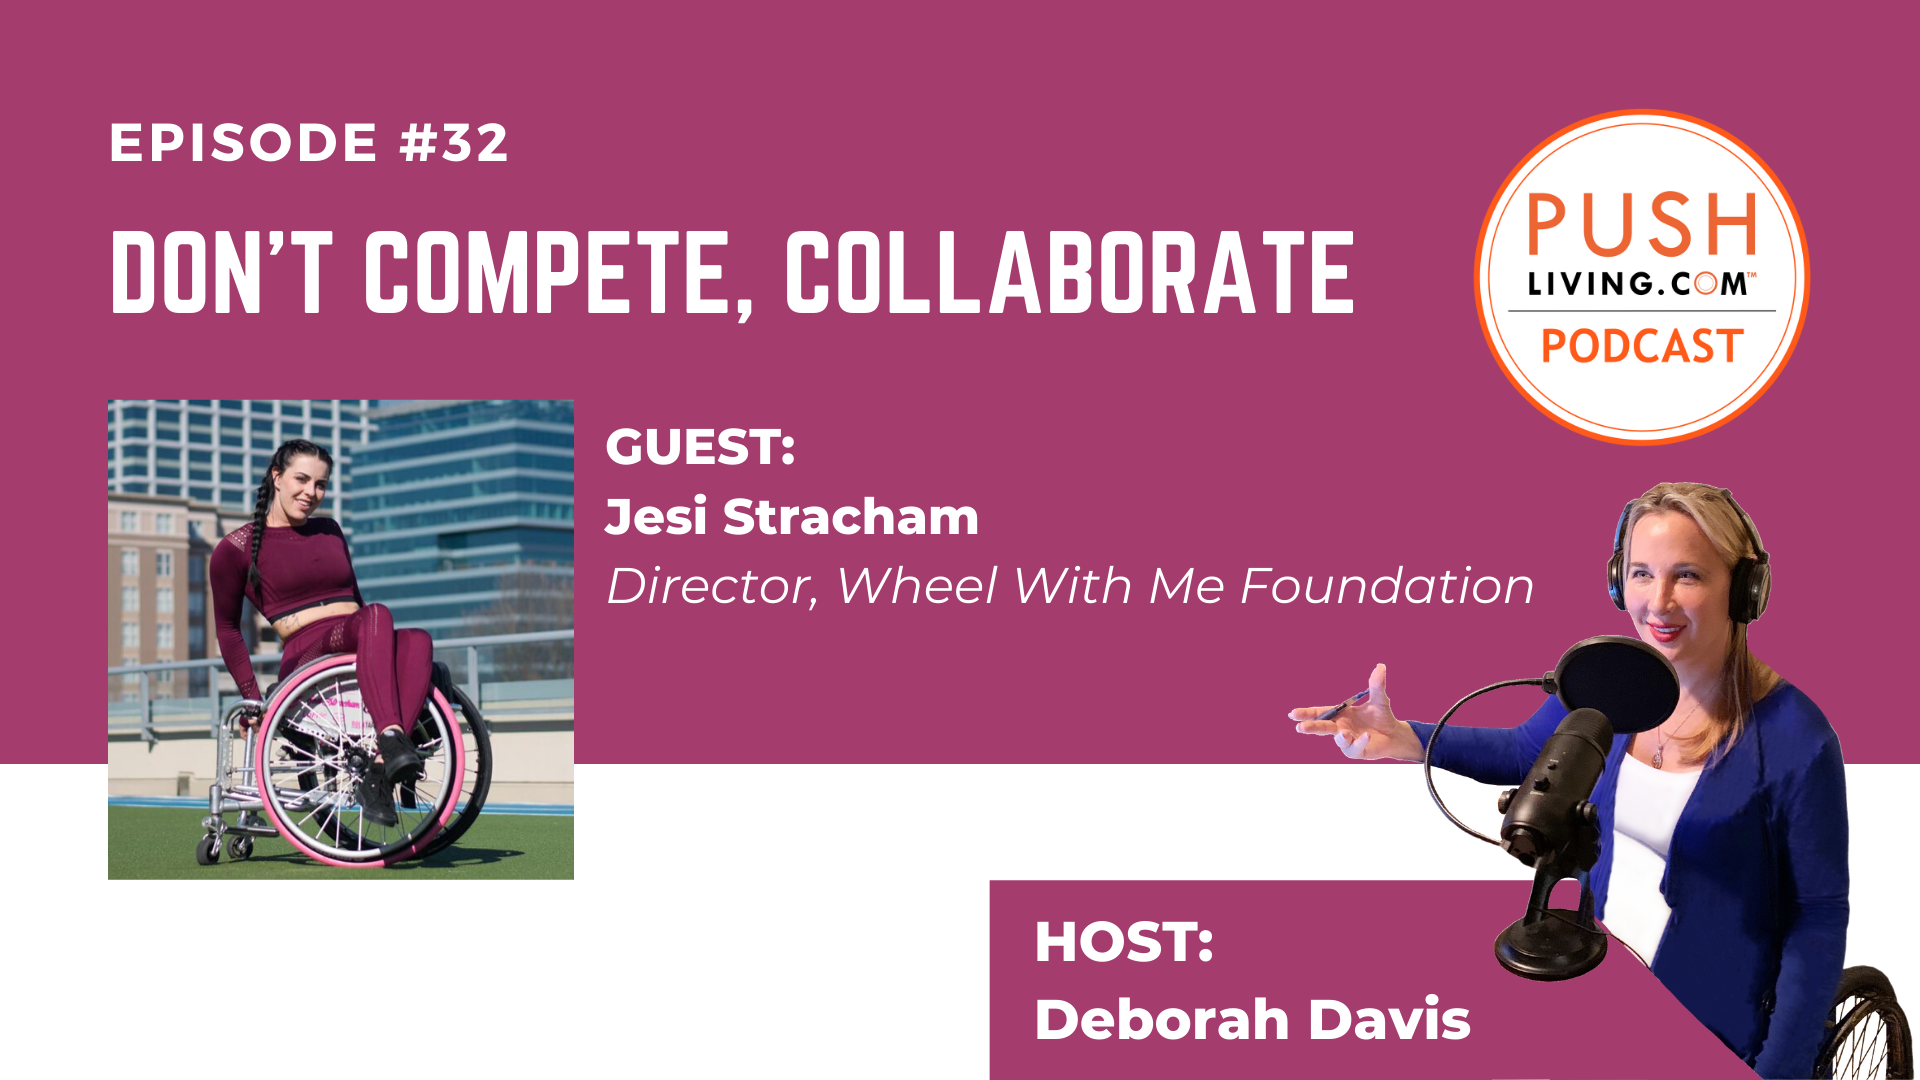 Podcast32 Cover 4 - PUSHLiving Podcast #32: Don't Compete, Collaborate! with Jesi Stracham